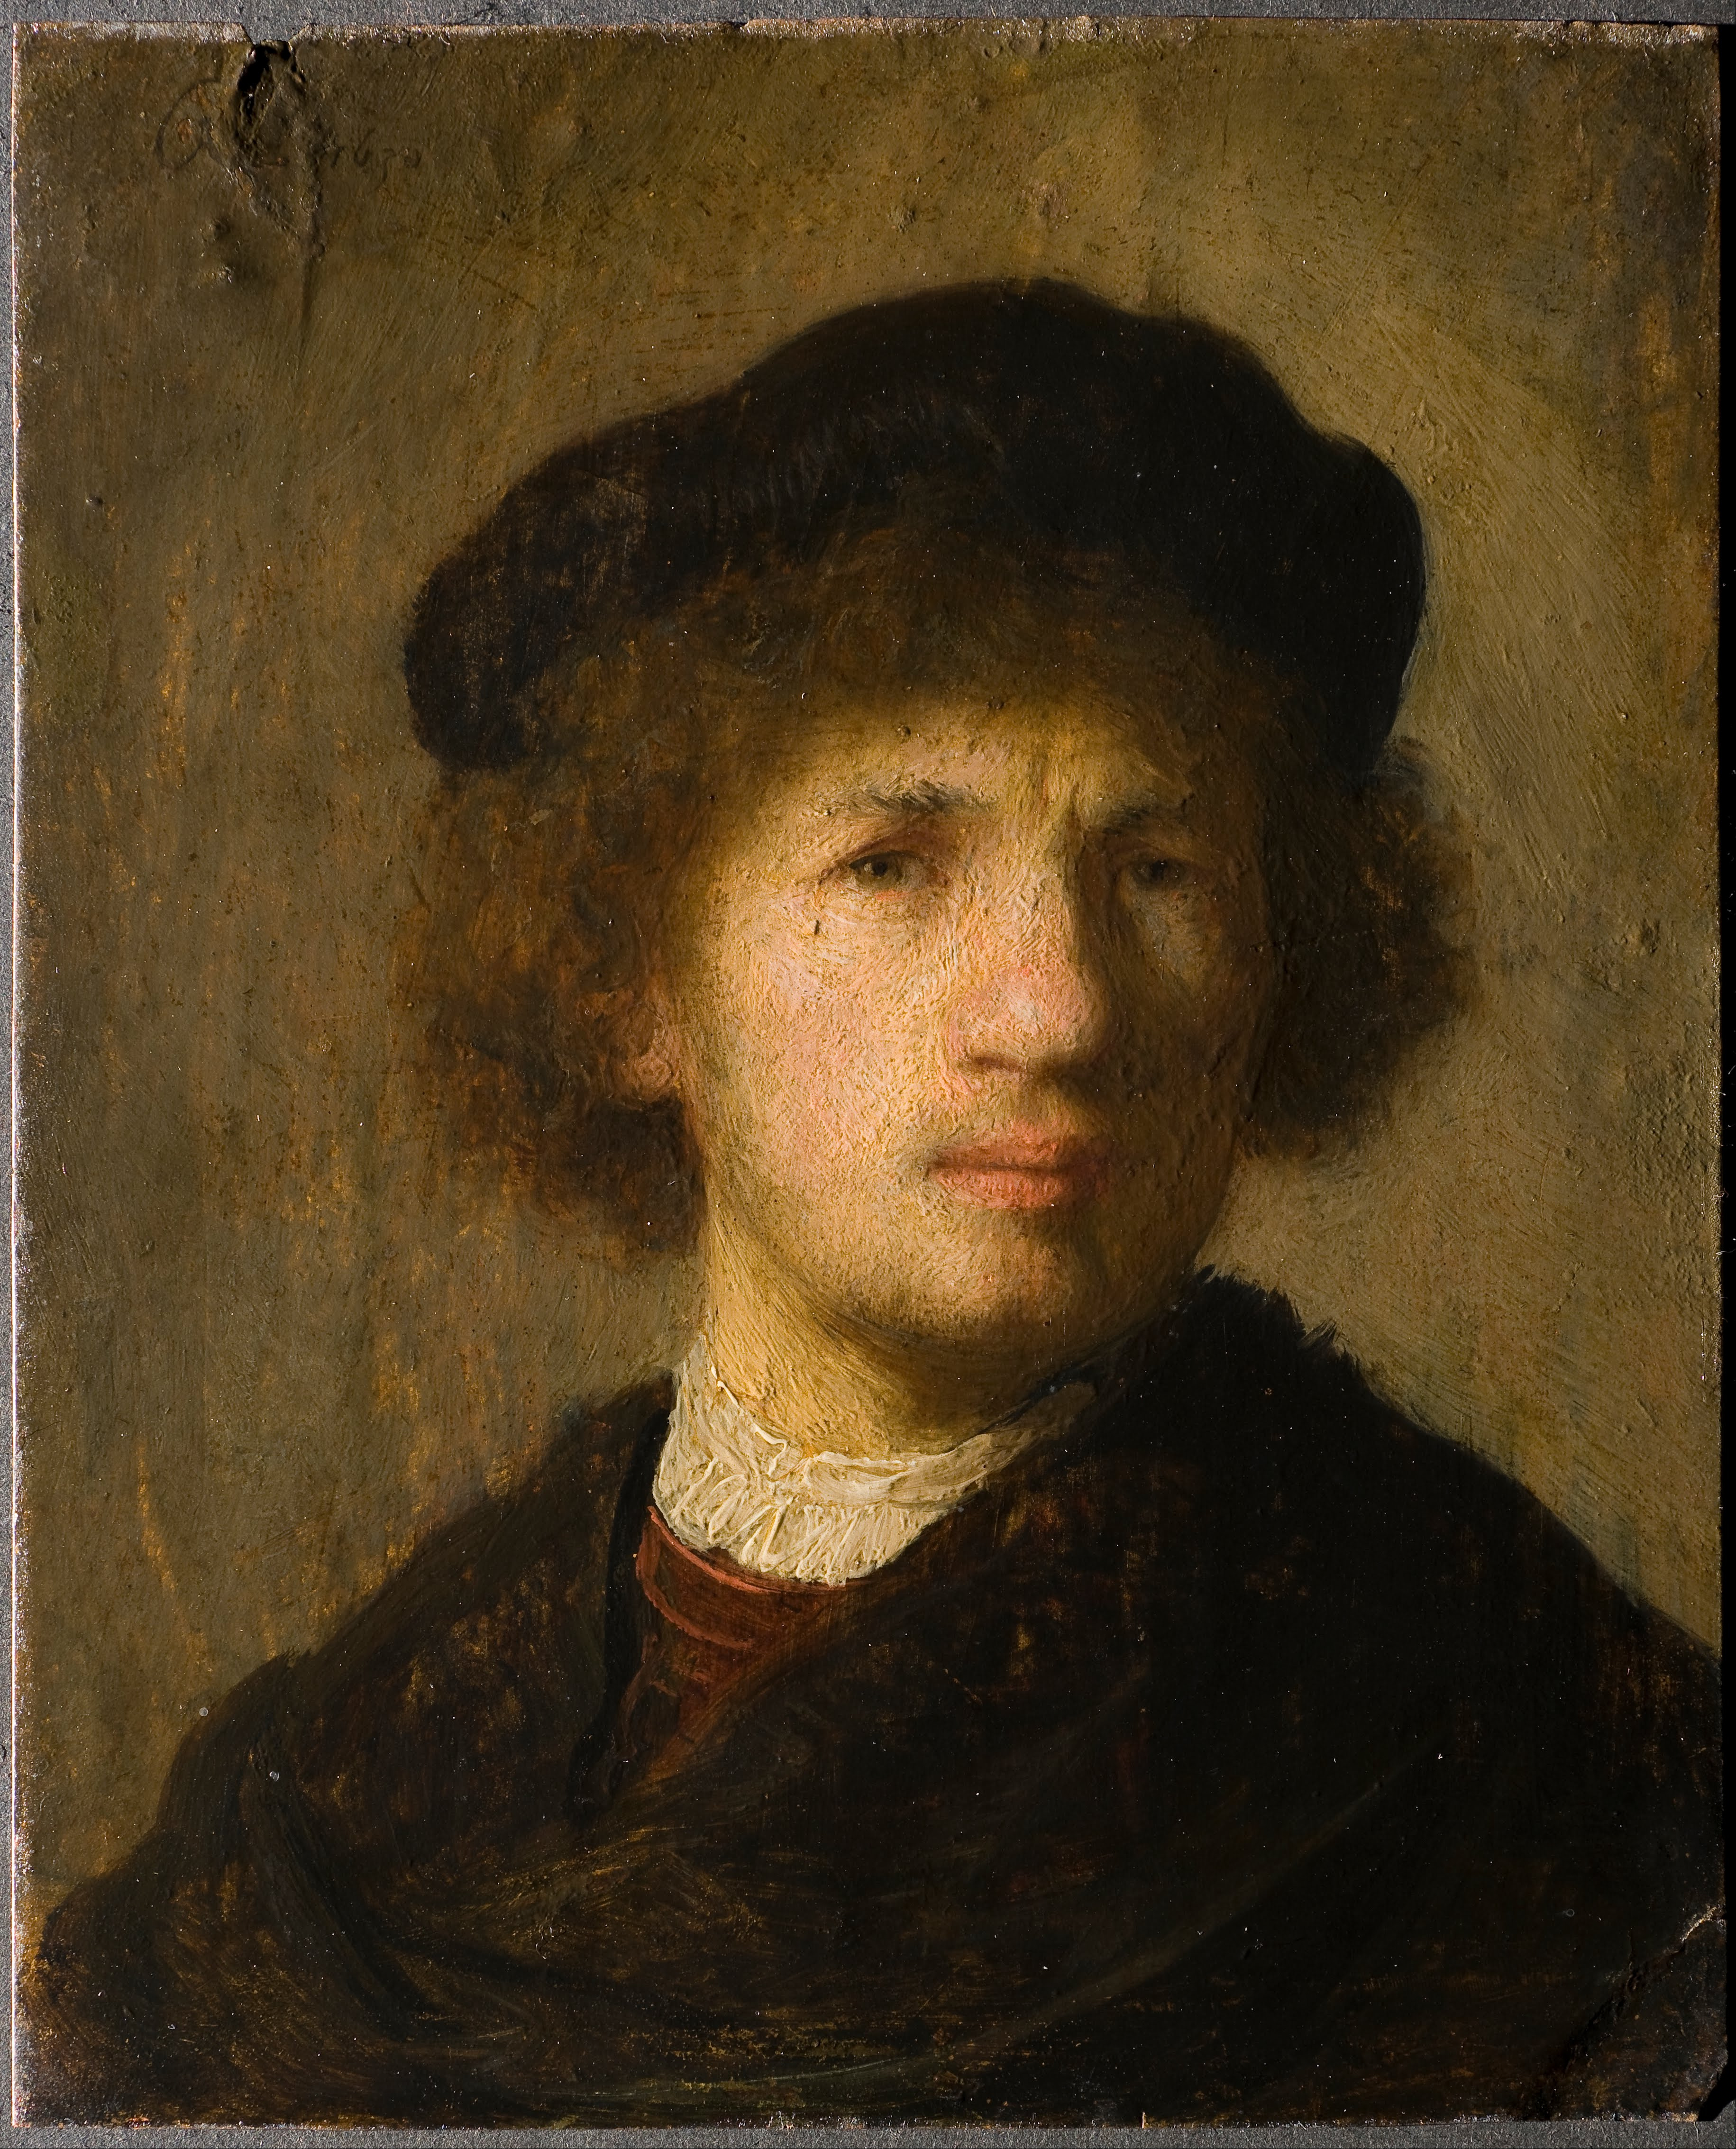 a biography of the painter rembrandt harmenszoon van riju Considered the greatest painter in all of european art, rembrandt van rijn was a dutch painter  rembrandt harmenszoon van rijn  and intimate biography,.